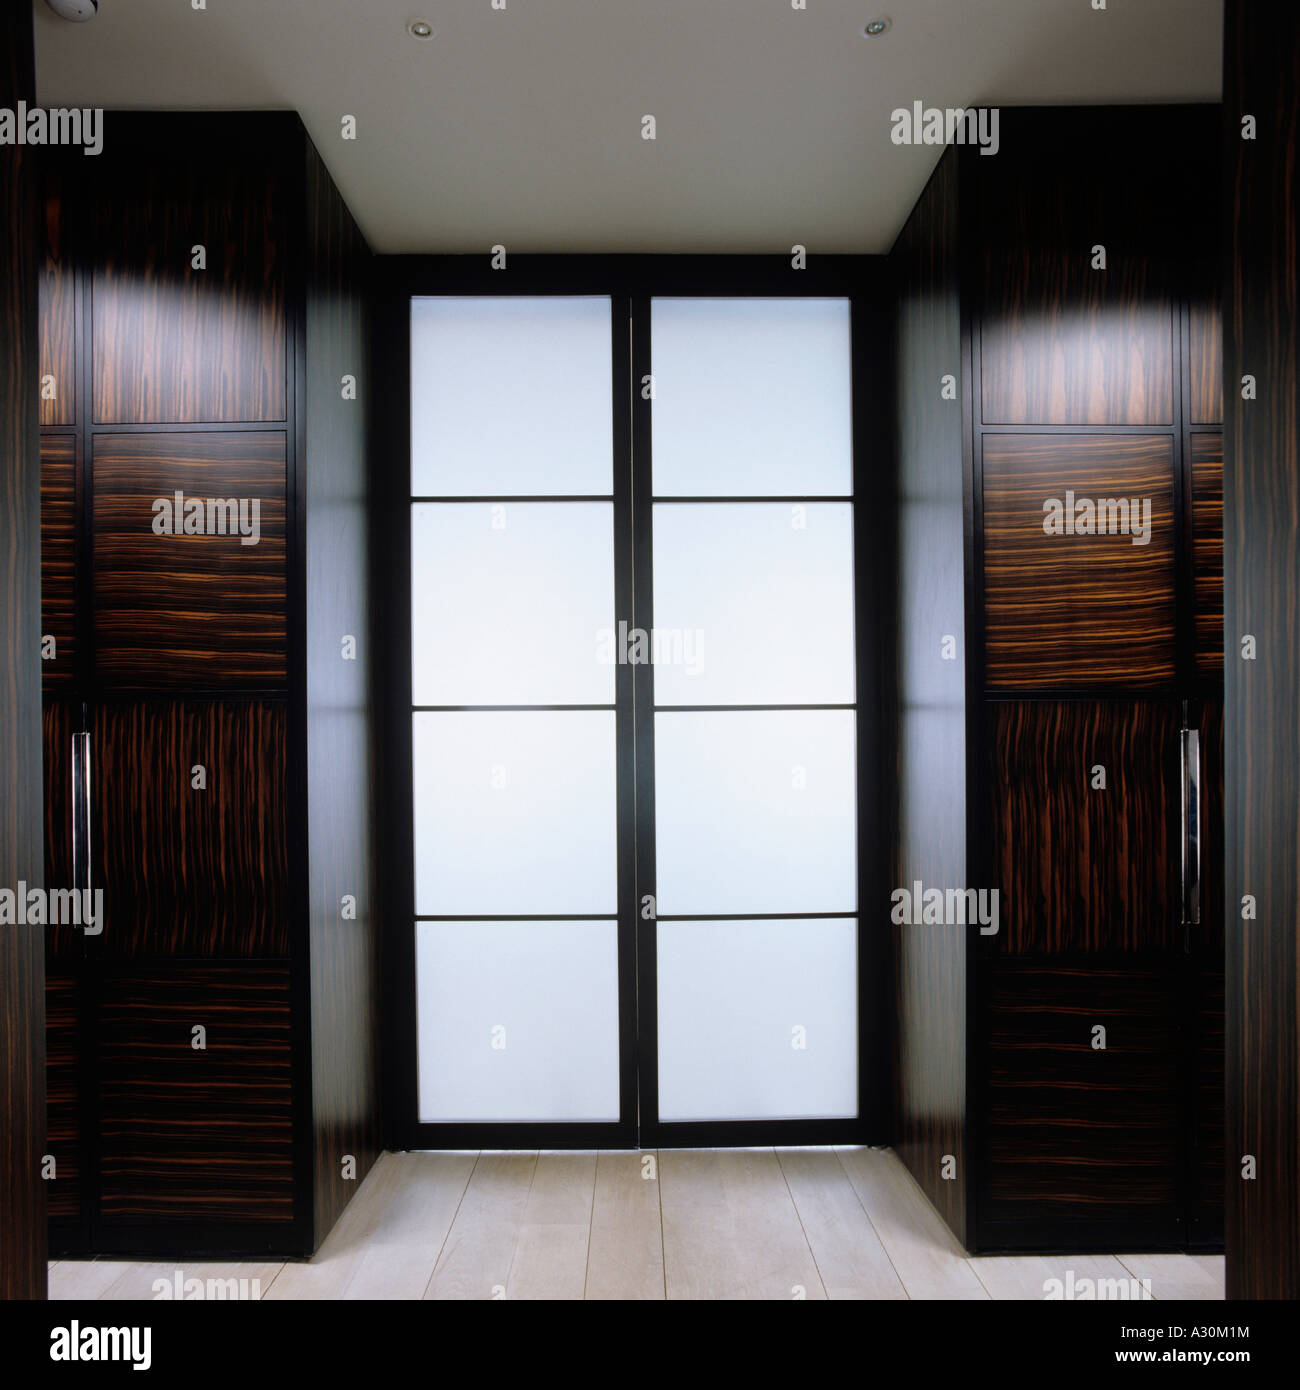 Glass double door with two polished walnut wardrobes - Stock Image